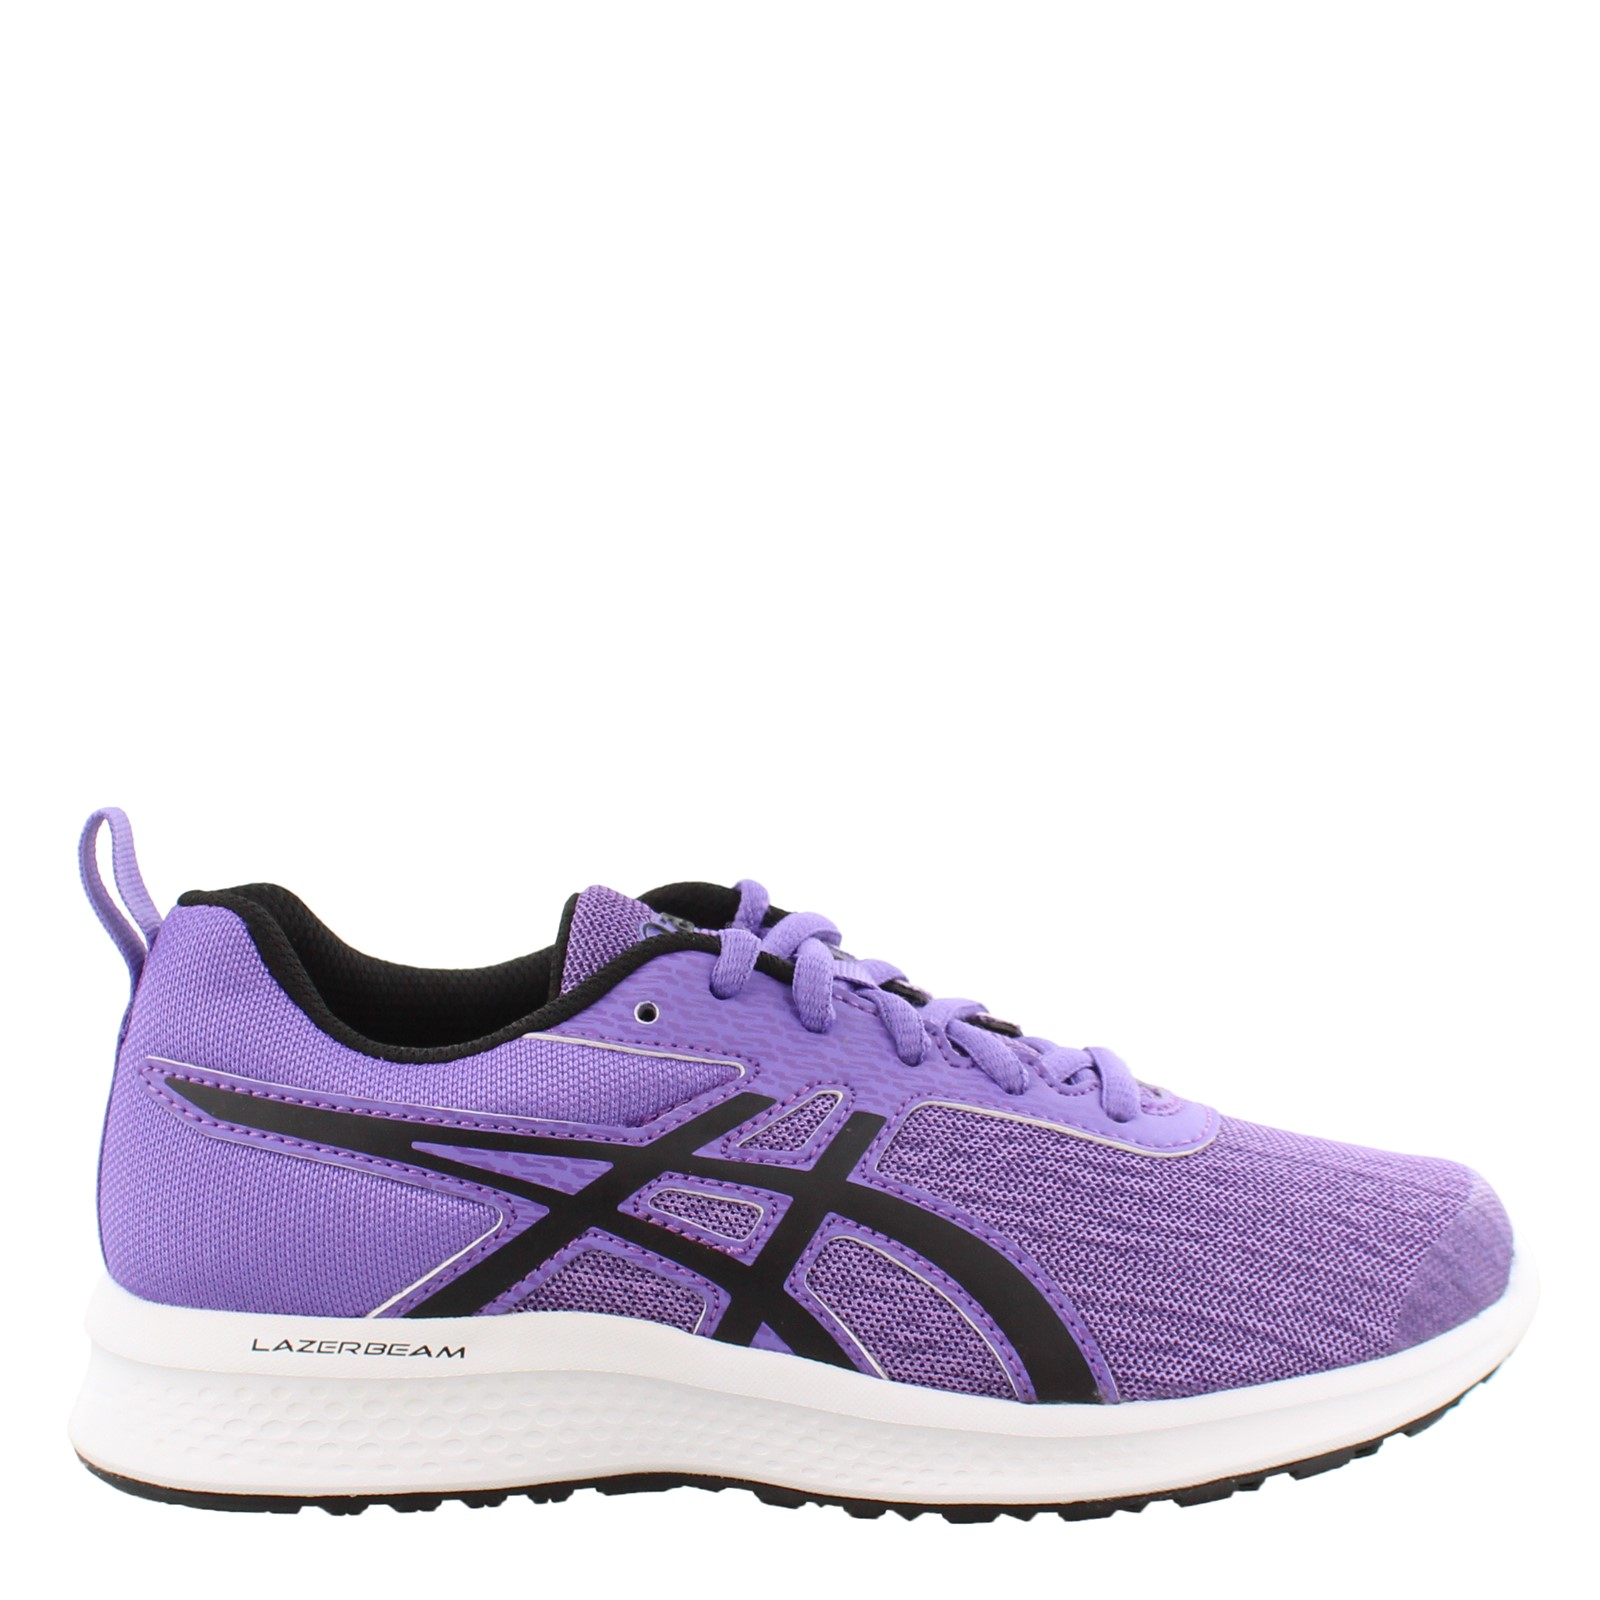 Girl's Asics, Laserbeam Sneaker - Big Kid